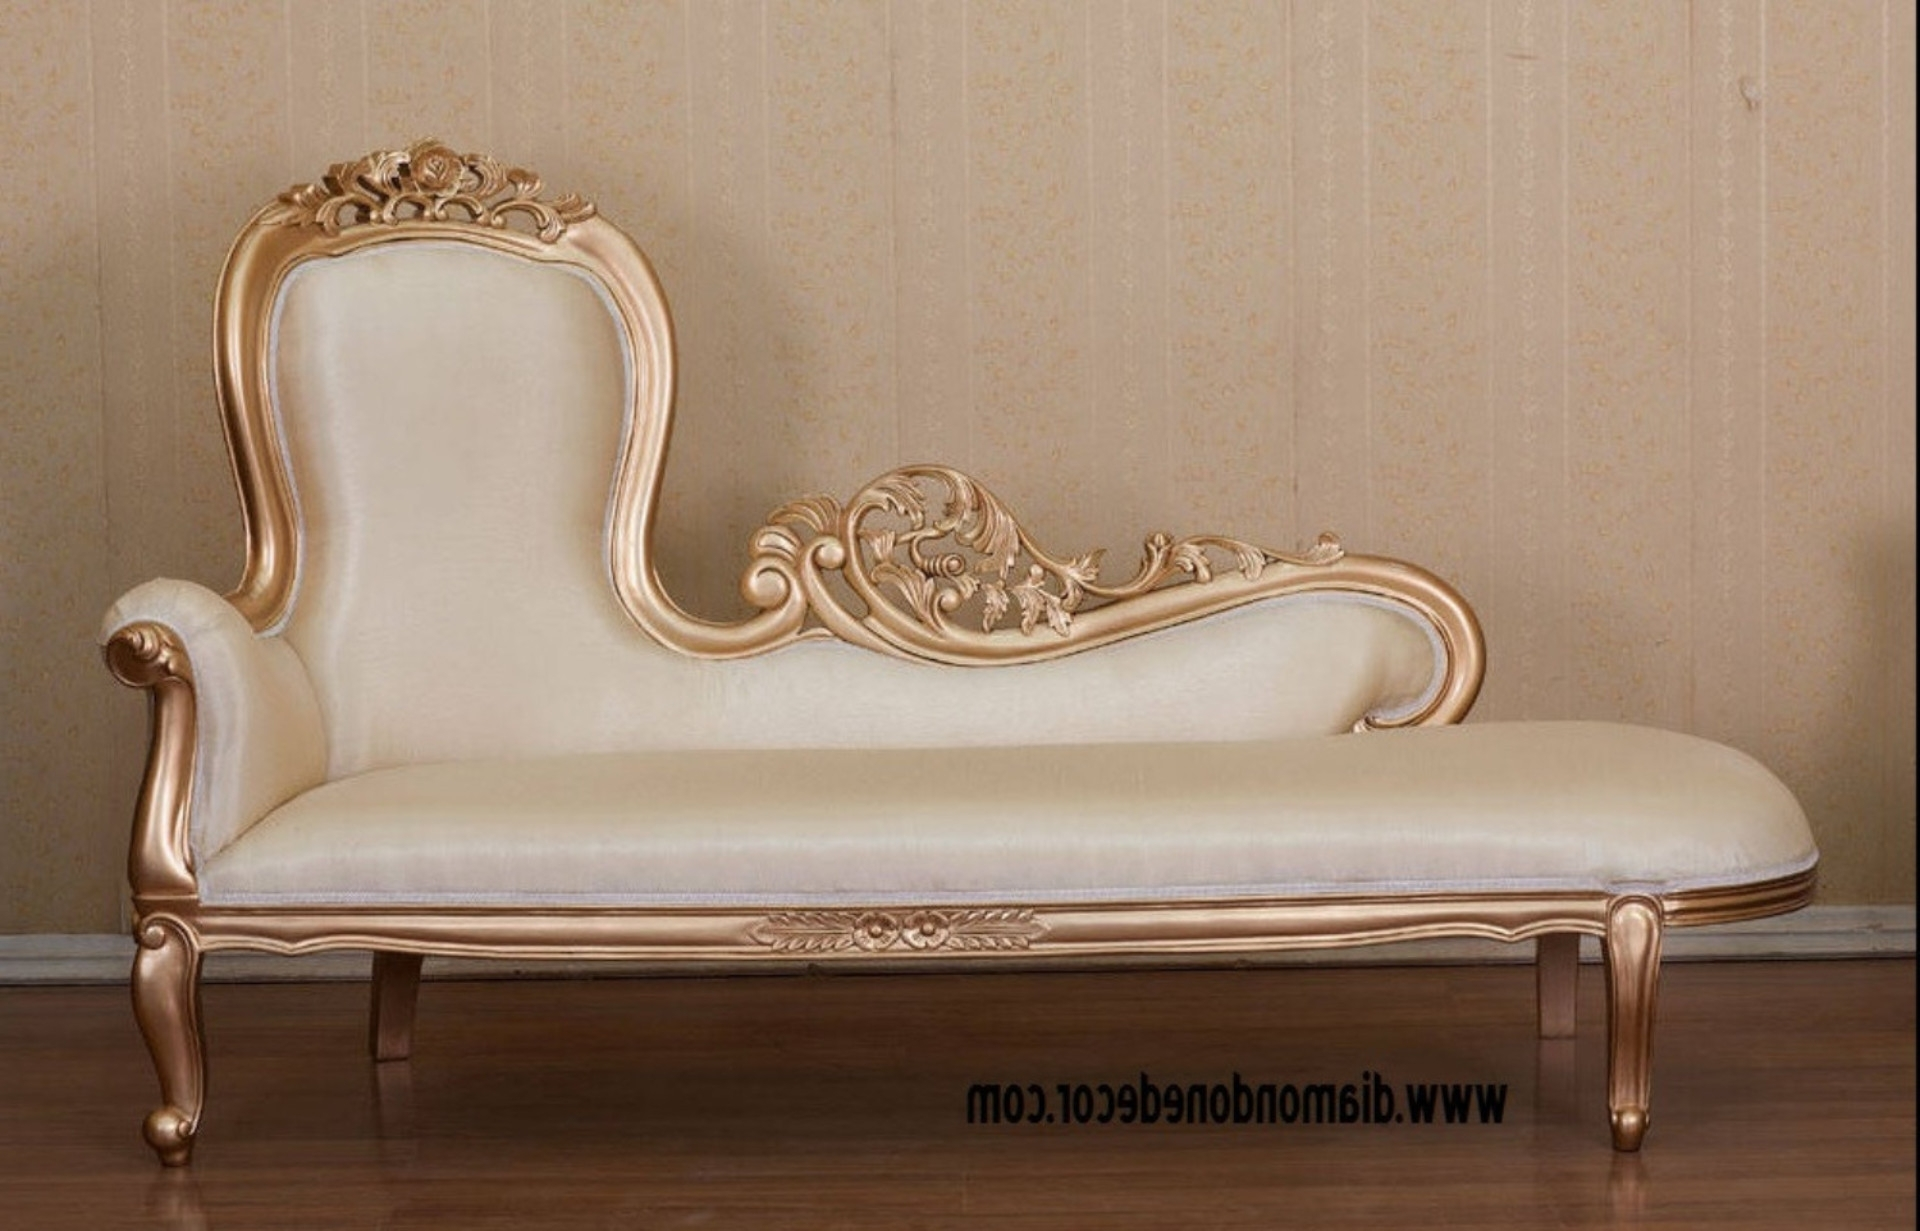 Fashionable Hot Pink Baroque French Reproduction Louis Xvi Style,rococo Throughout French Country Chaise Lounges (View 9 of 15)